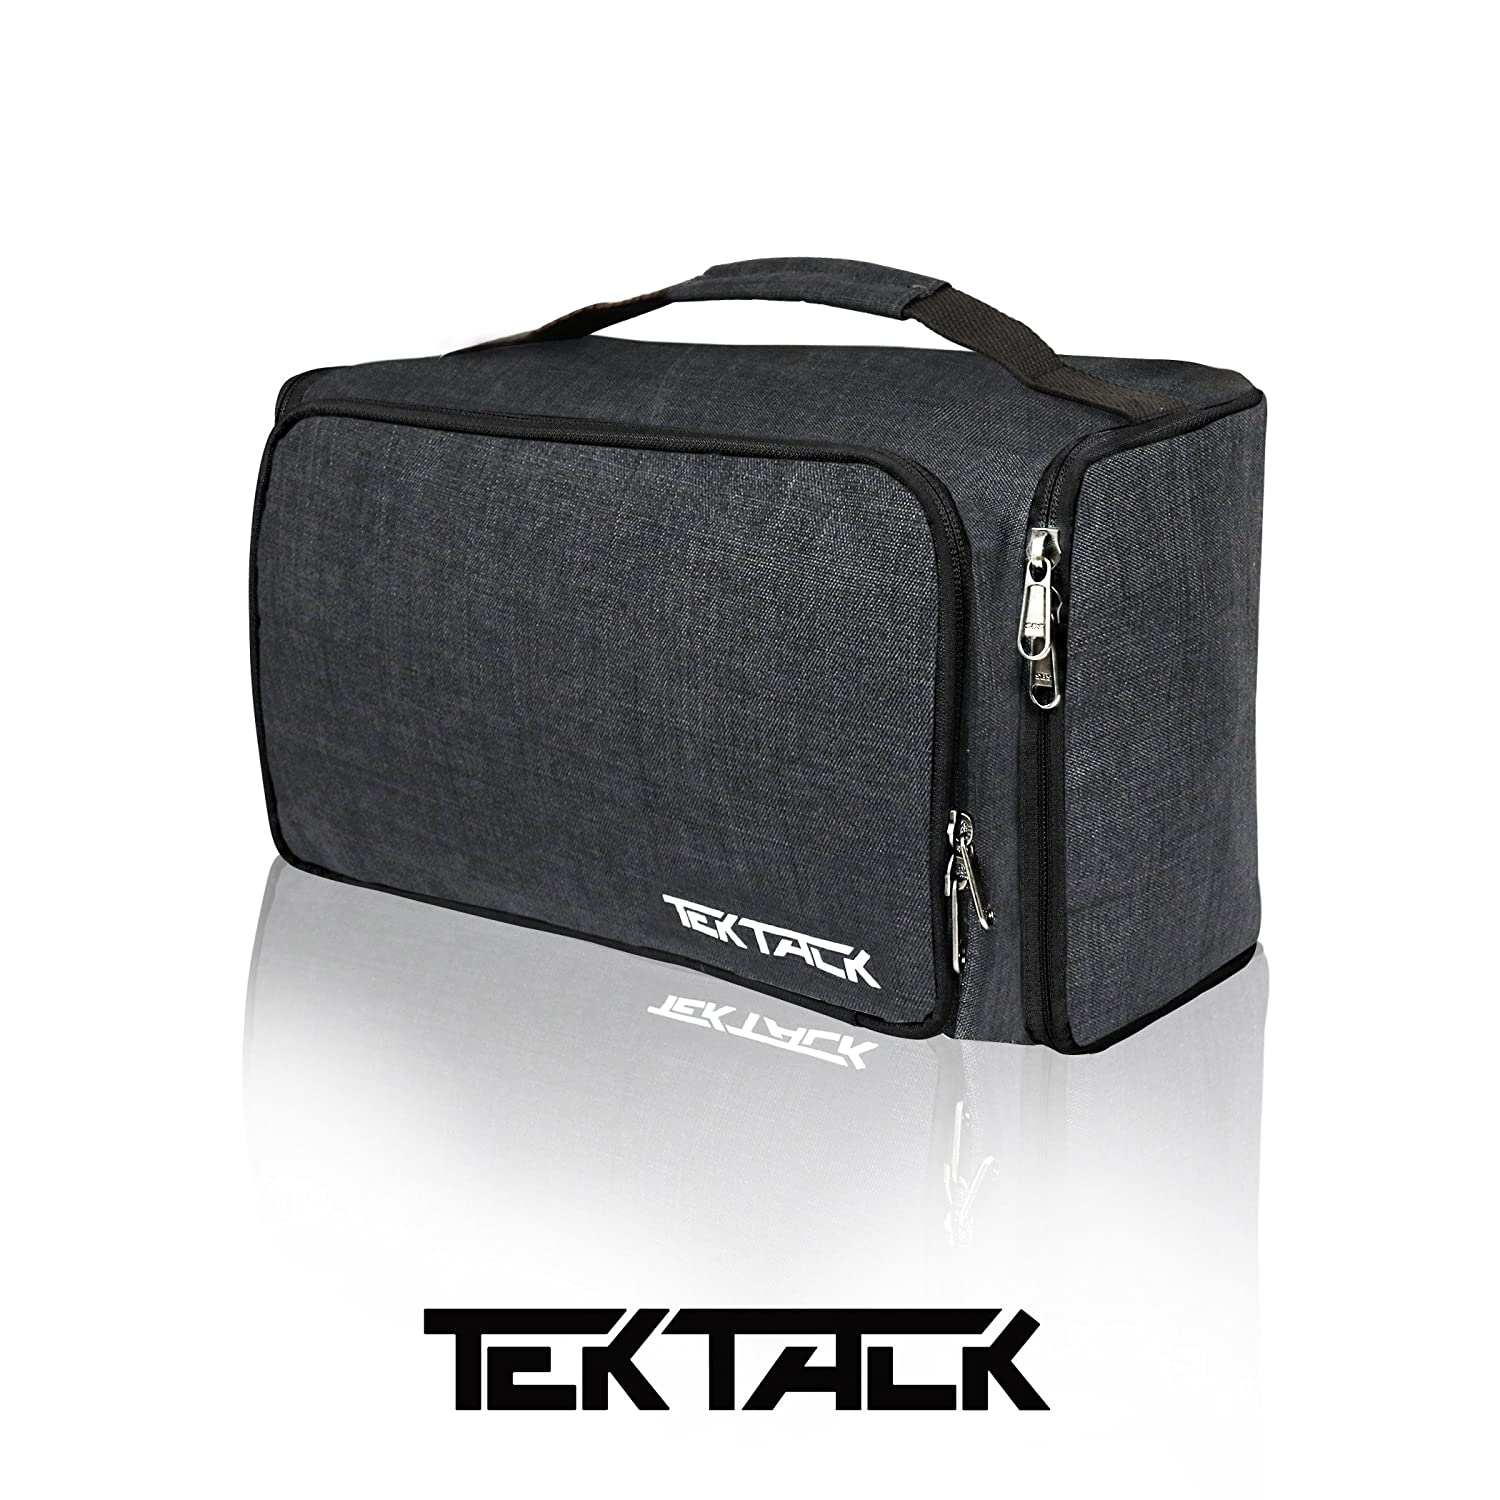 Tektalk Multifunctional Foldable Toiletry Bag Hanging Cosmetic Kit Portable Makeup Case with Large Capacity Suitable for Travels, Business Trips and Vacations – Black